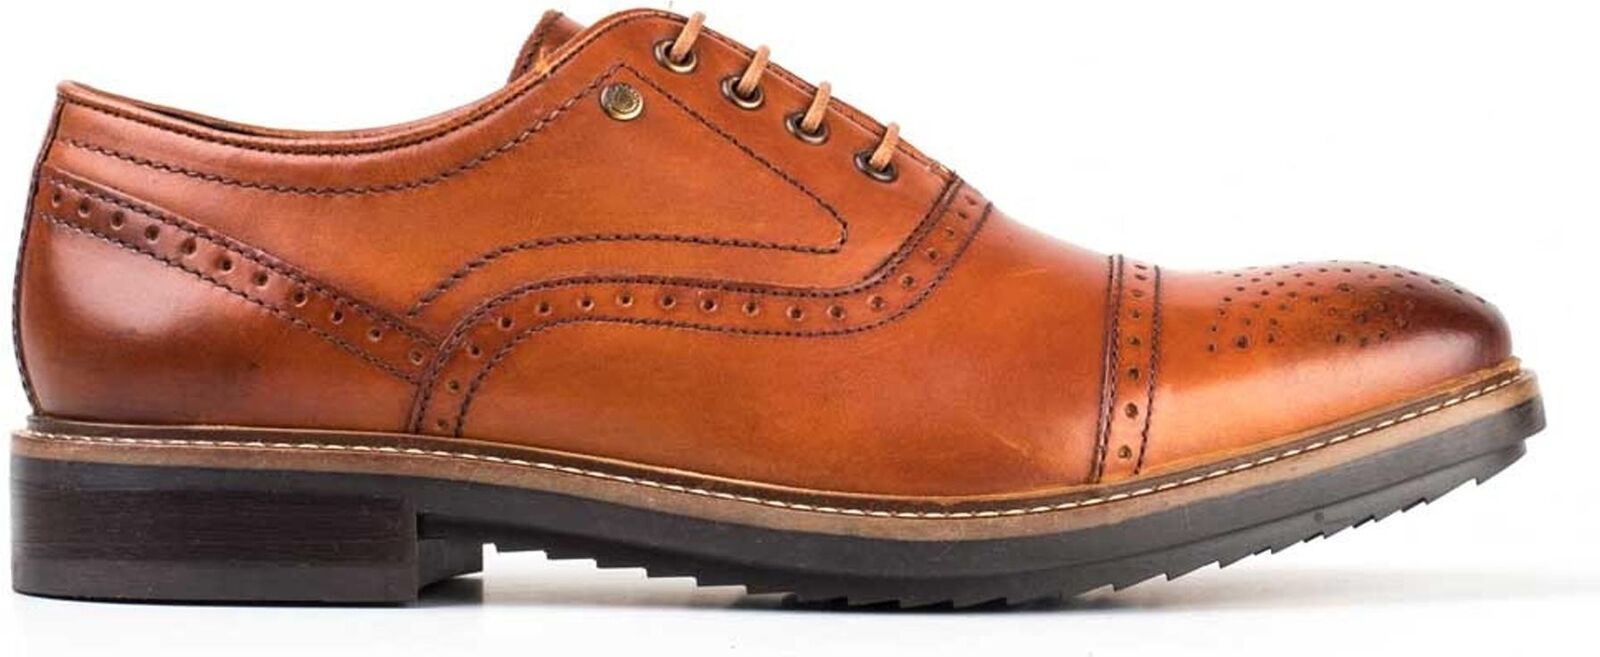 Base London HARDY Mens Washed Leather Oxford Toe Cap Cap Cap Office Brogue schuhe Tan 867ead